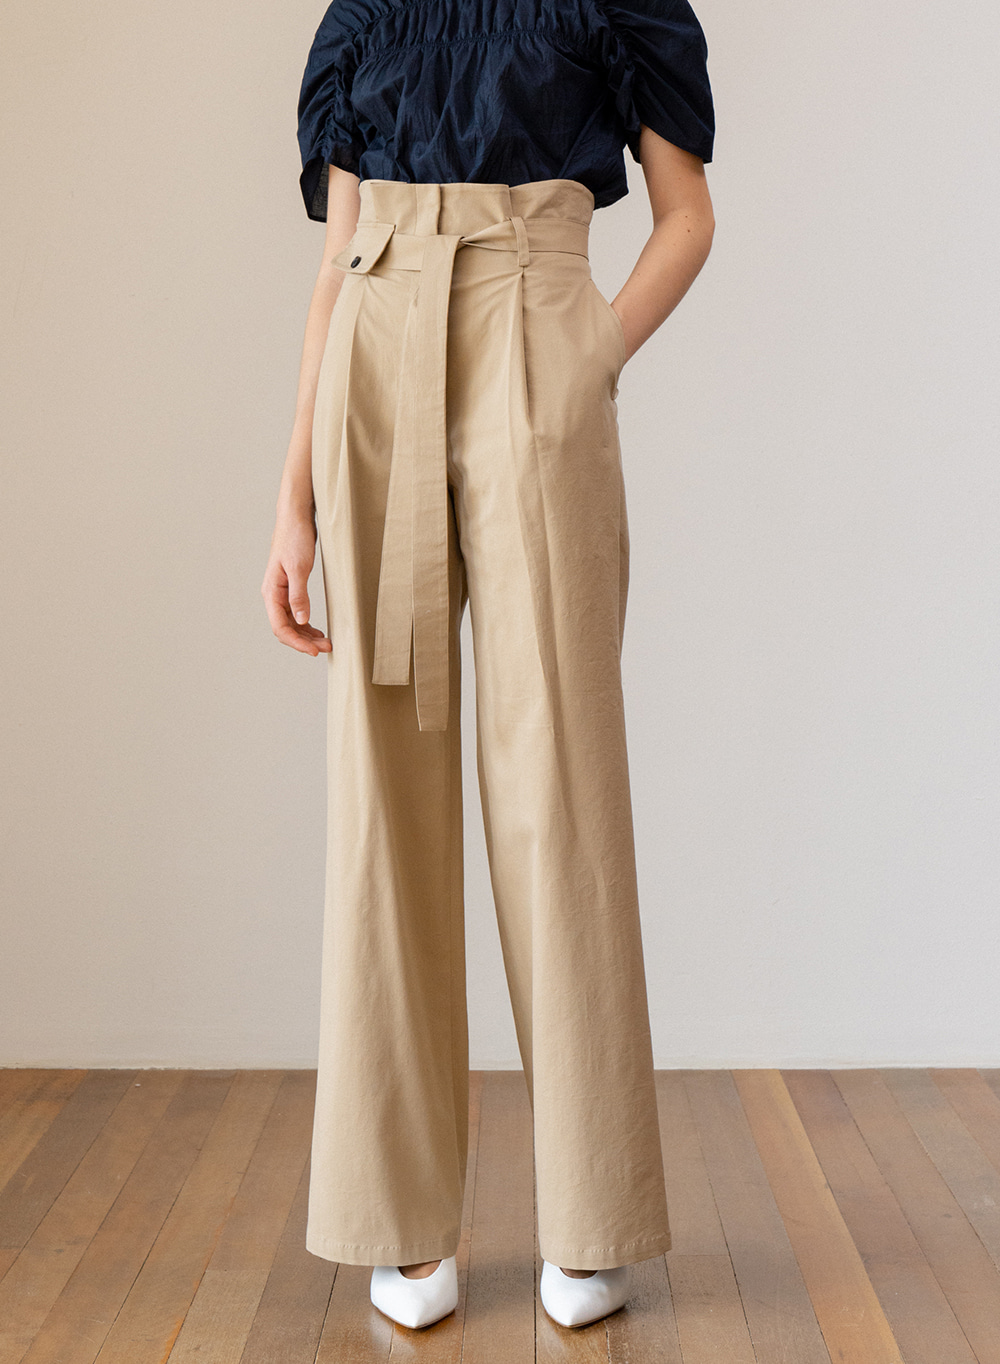 SS19 Highwaist Pants Beige